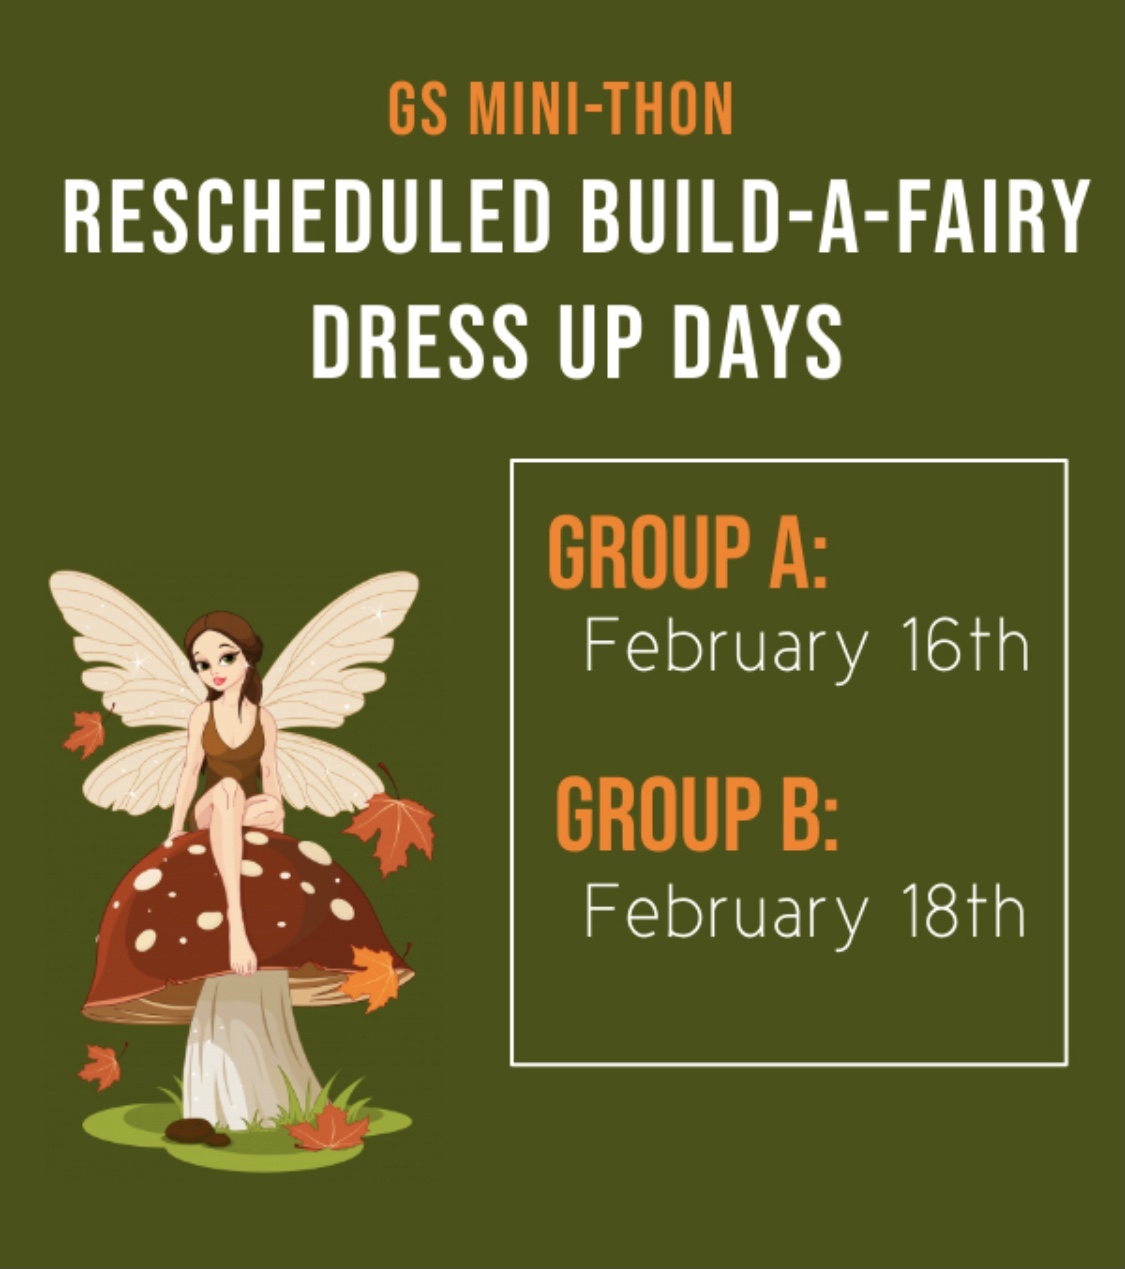 build-a-fairy rescheduled